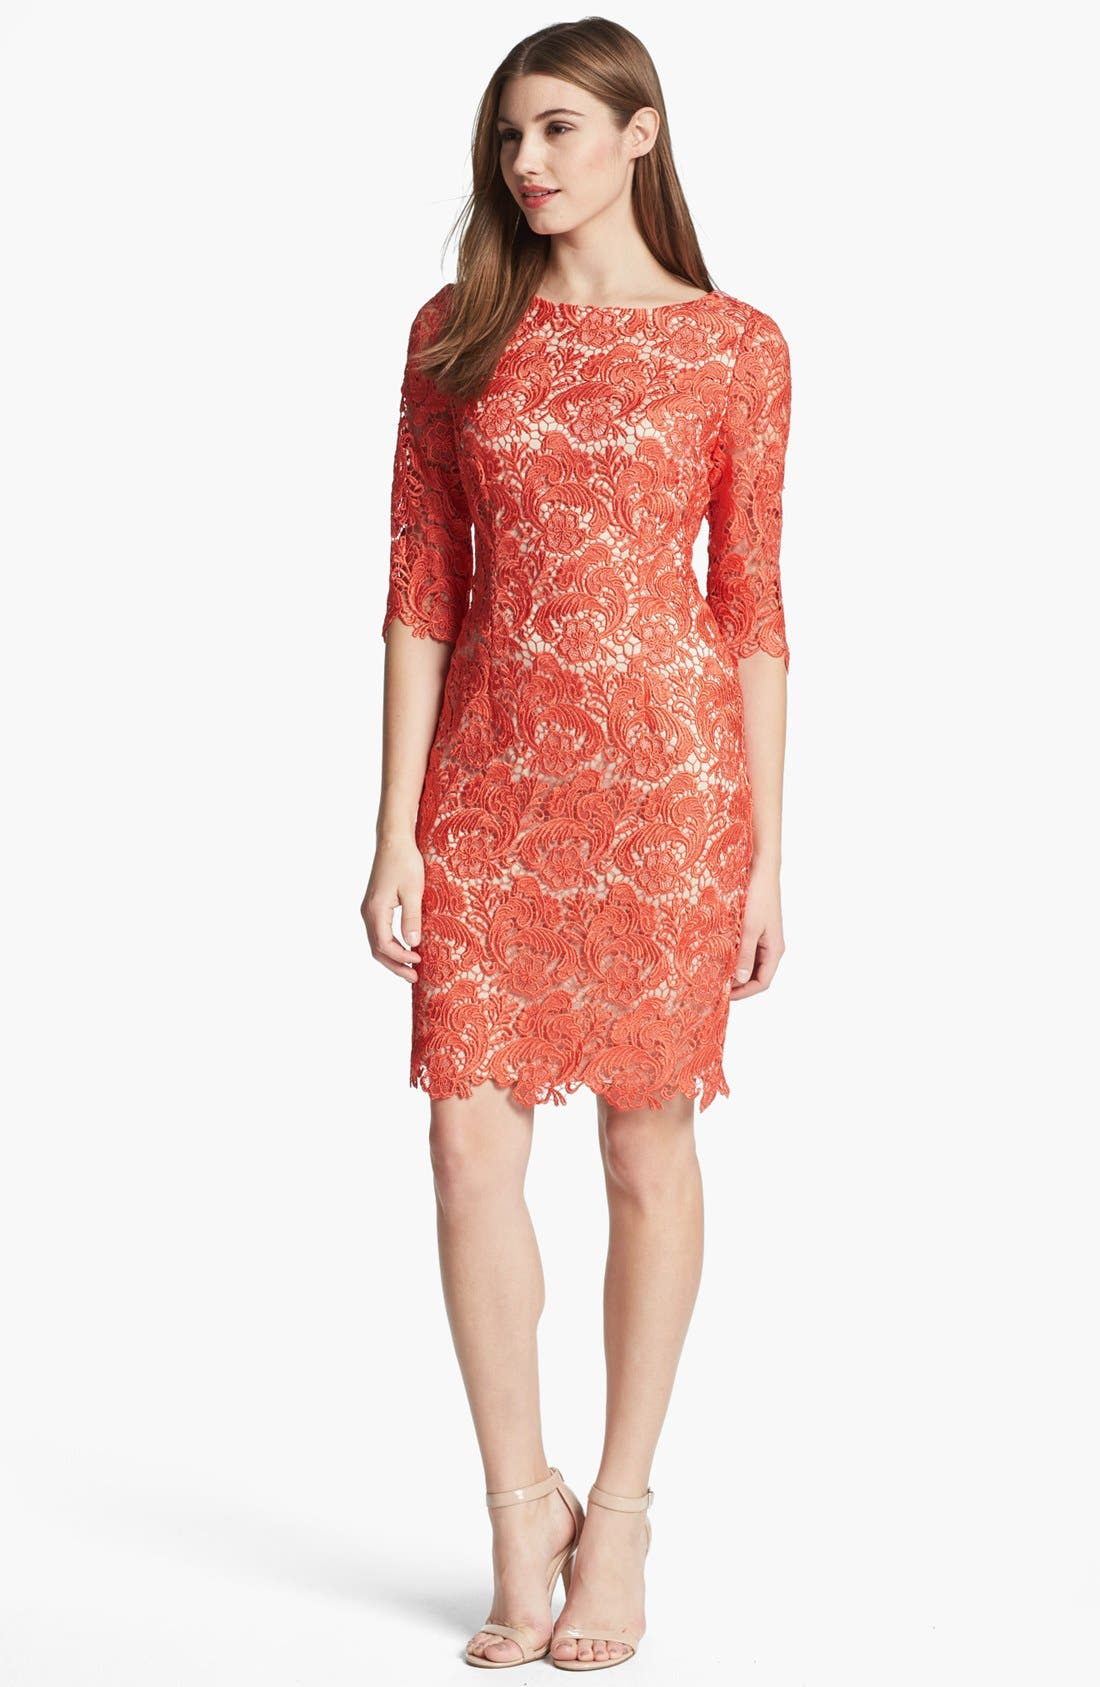 Alternate Image 1 Selected - Eliza J Embroidered Lace Overlay Sheath Dress (Regular & Petite)